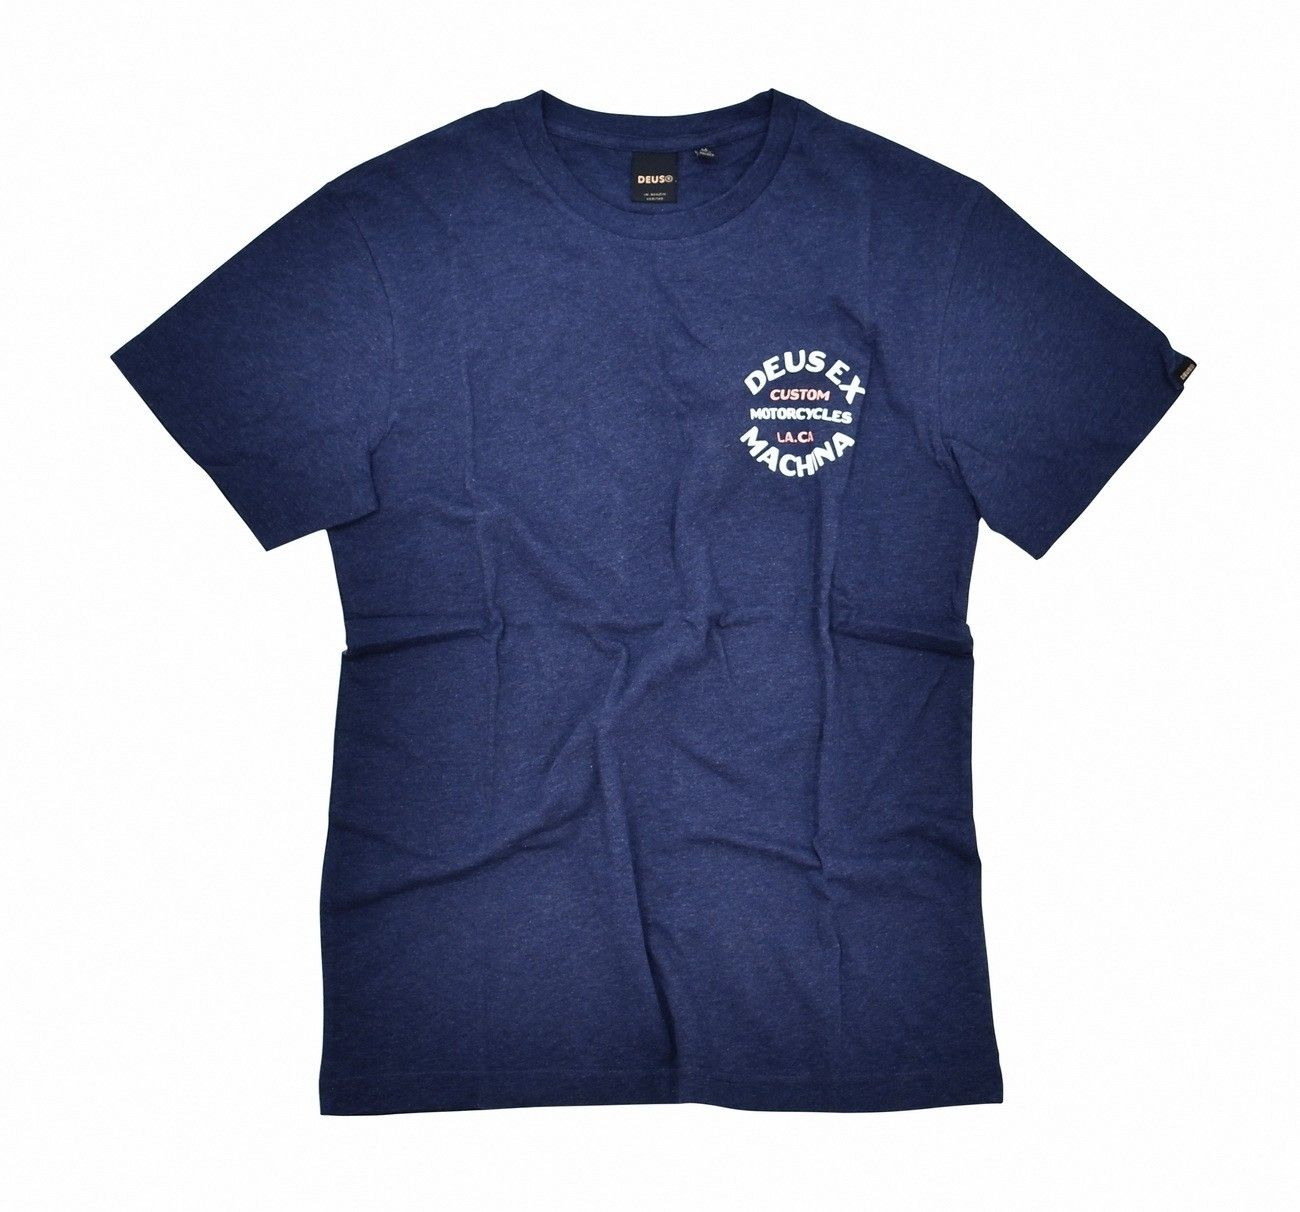 DEUS EX MACHINA - T-Shirt - Apple Tee - Navy Marle